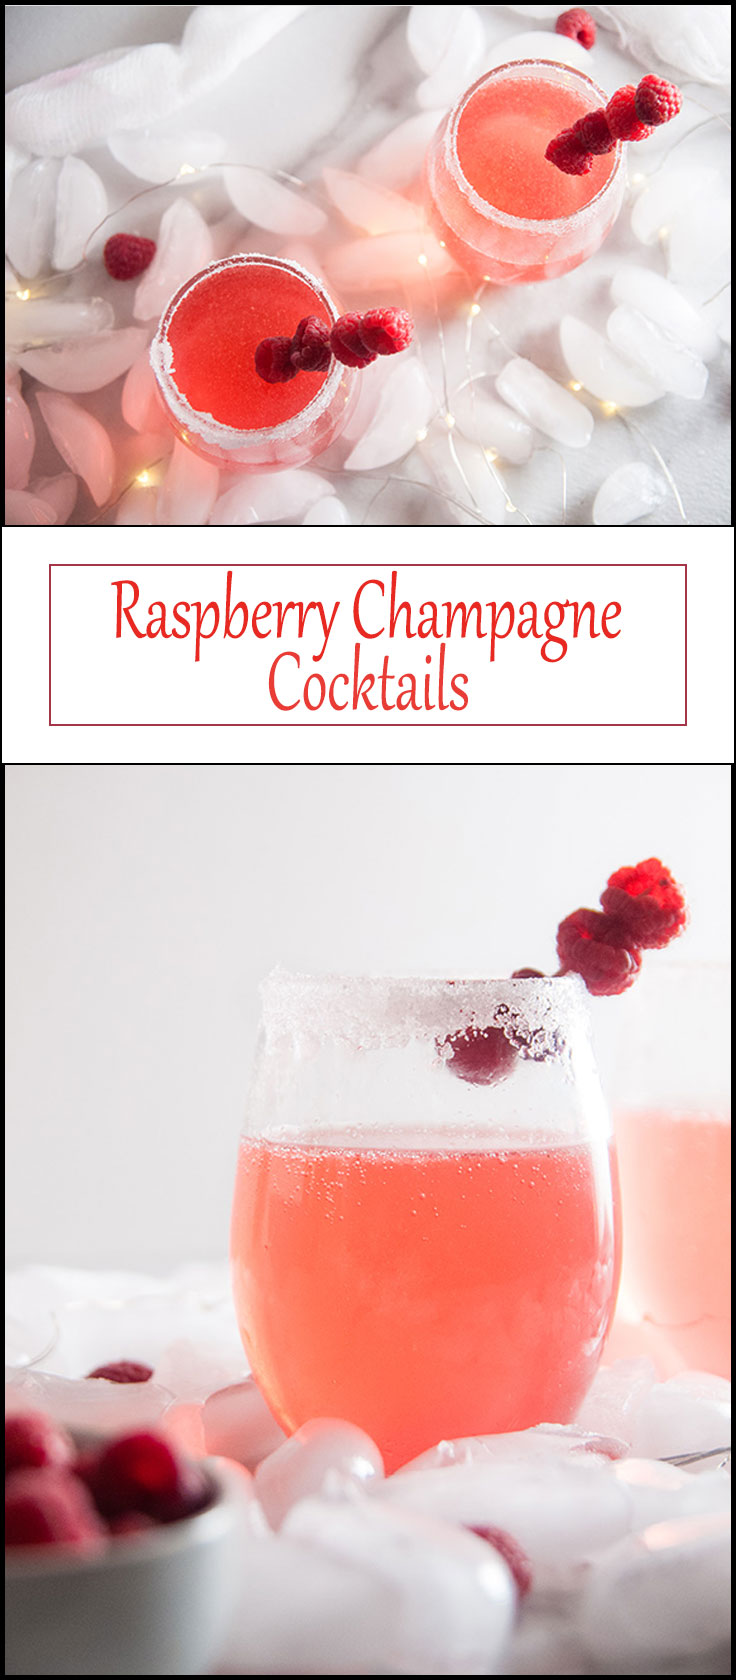 Raspberry Champagne Cocktails from www.seasonedsprinkles.com